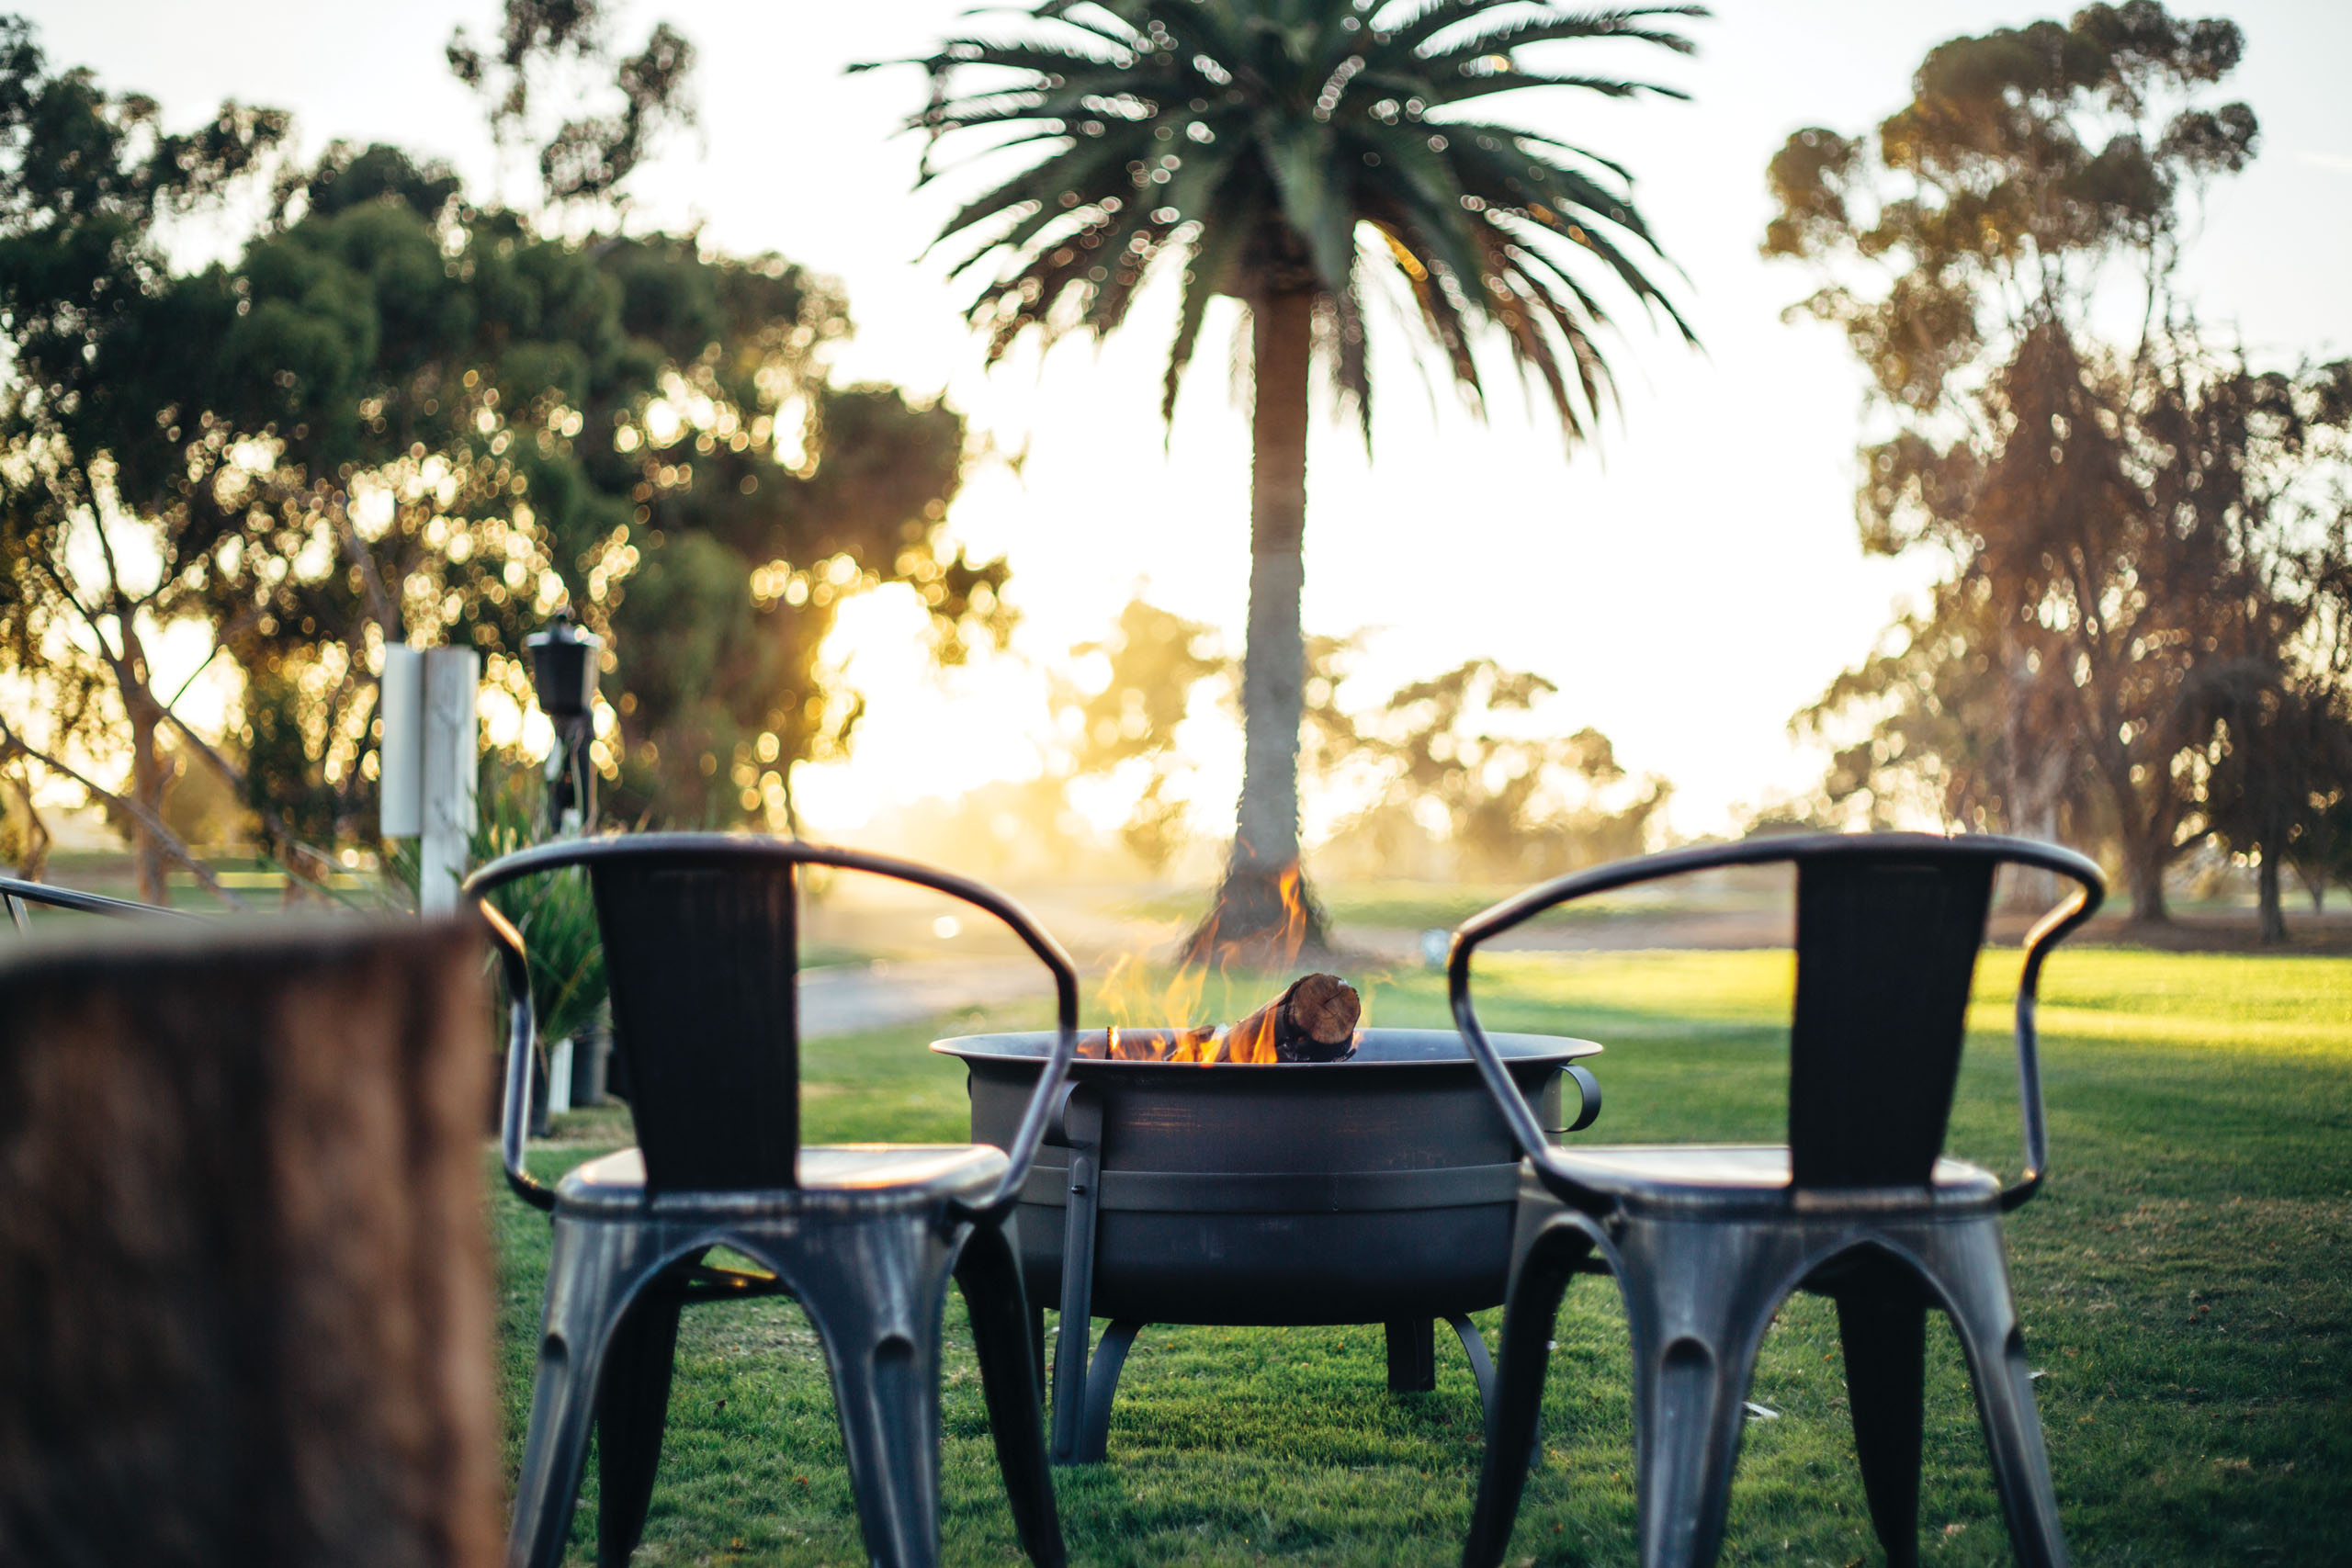 Firepit at golf course